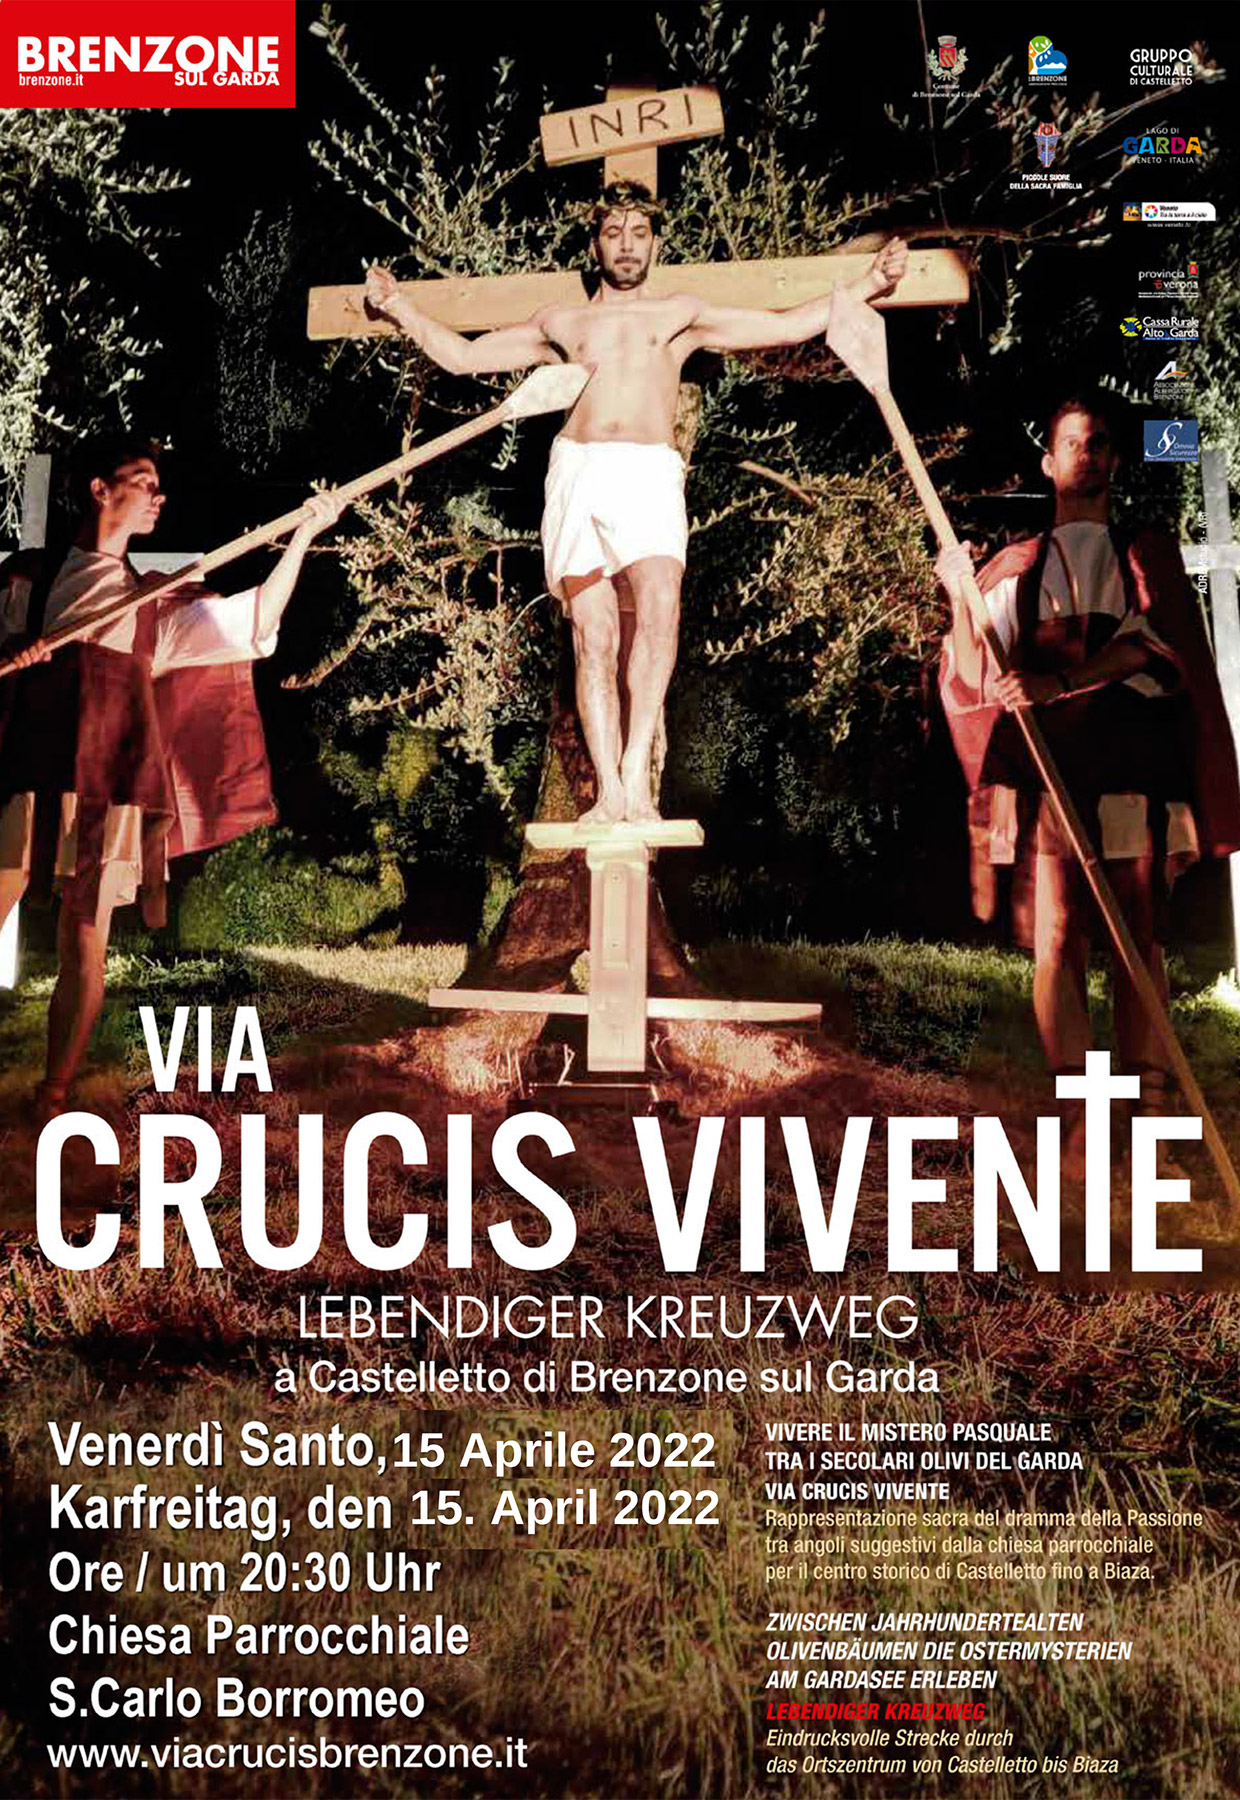 Via Crucis vivente del Venerdì Santo - Lebendige Darstellung der Via Crucis am Karfreitag - Good Friday Via Crucis